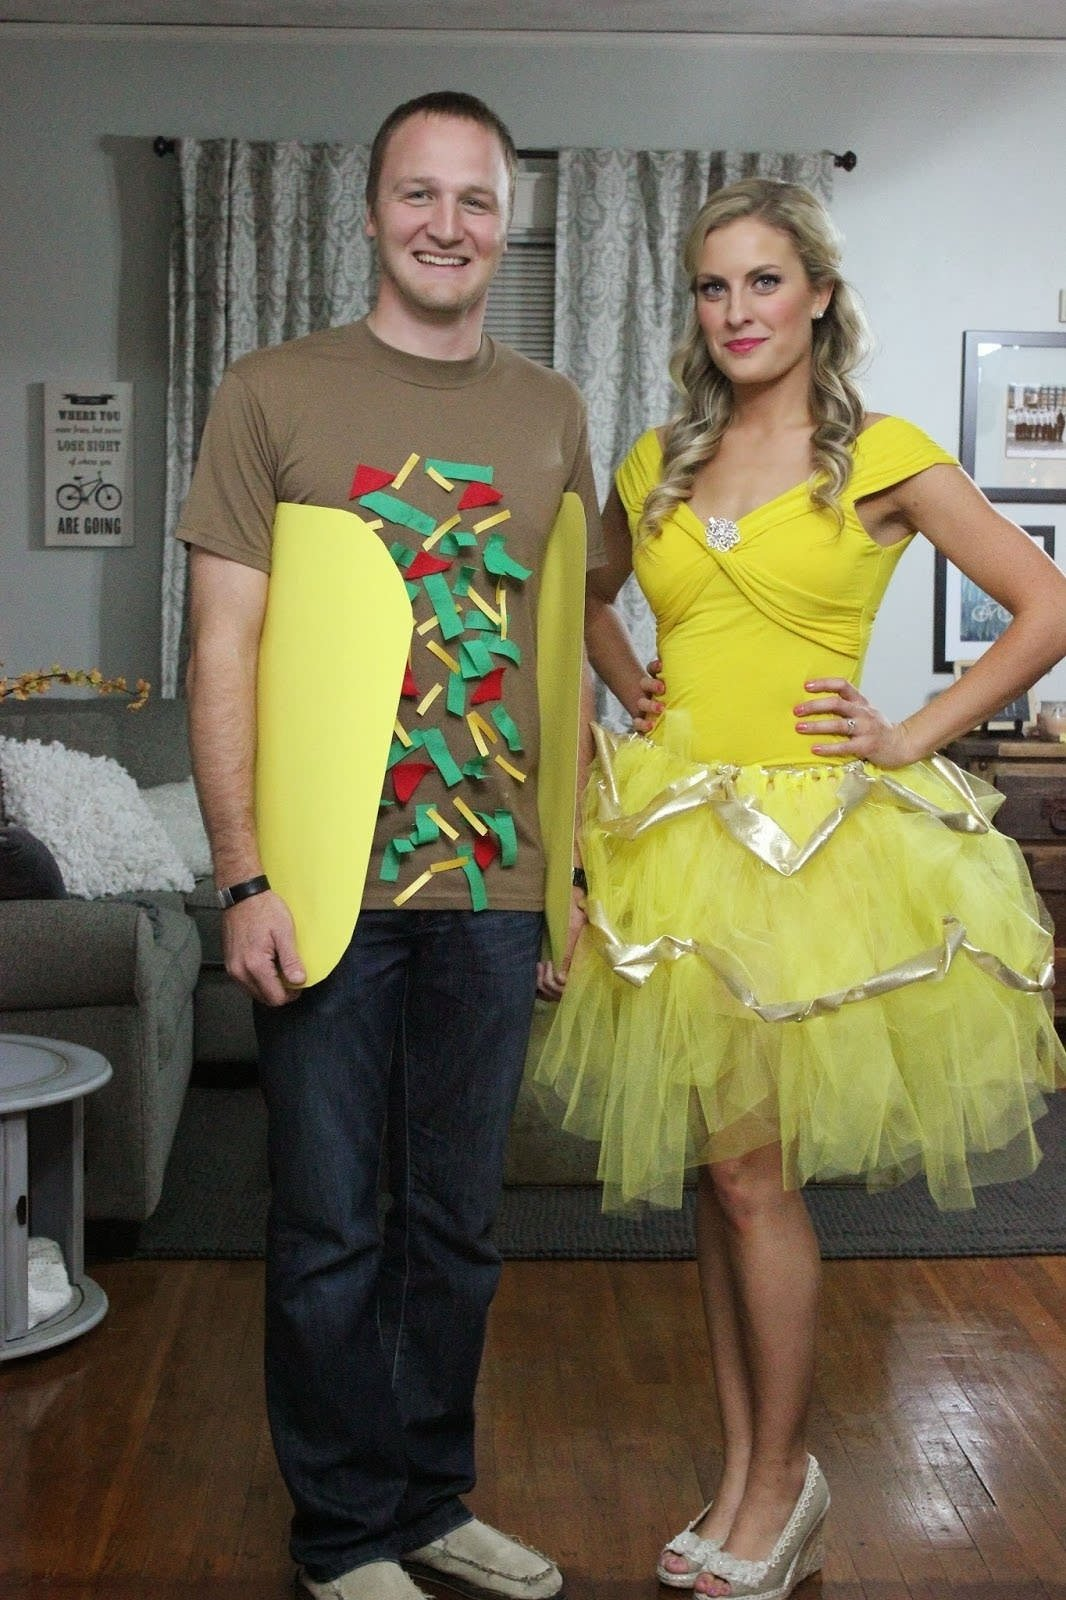 10 Most Recommended Couples Homemade Halloween Costume Ideas 15 diy couples and family halloween costumes onecreativemommy 2 2021